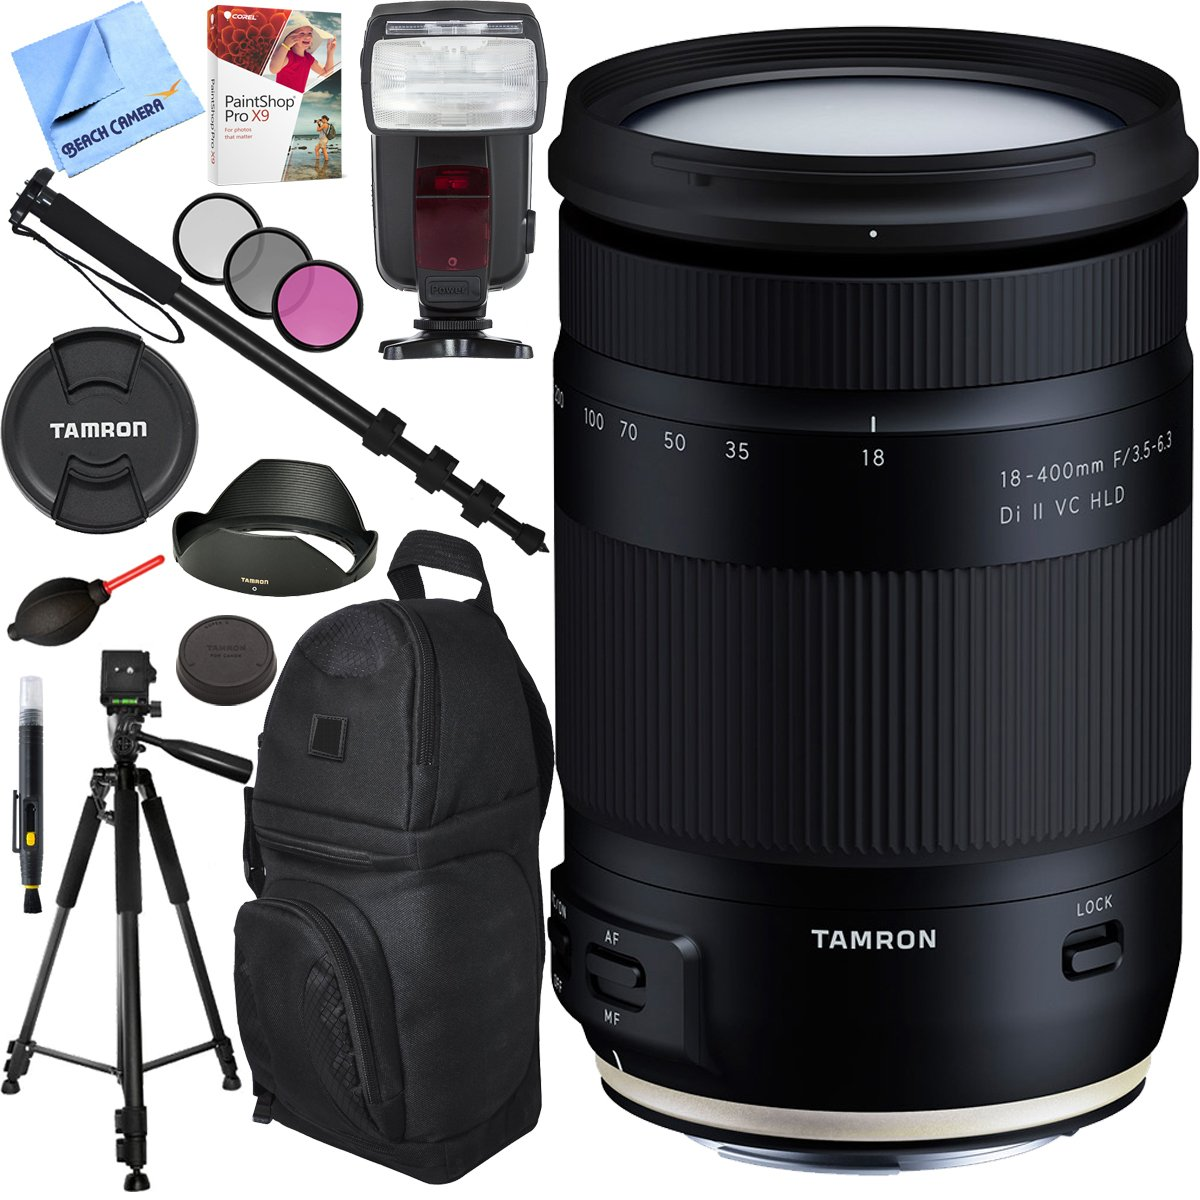 Tamron 18 400mm F 35 63 Di Ii Vc Hld All In One Zoom 200mm Iii Lens For Canon Ef M Mount With Pro Sling Backpack Plus Accessories Bundle Camera Photo